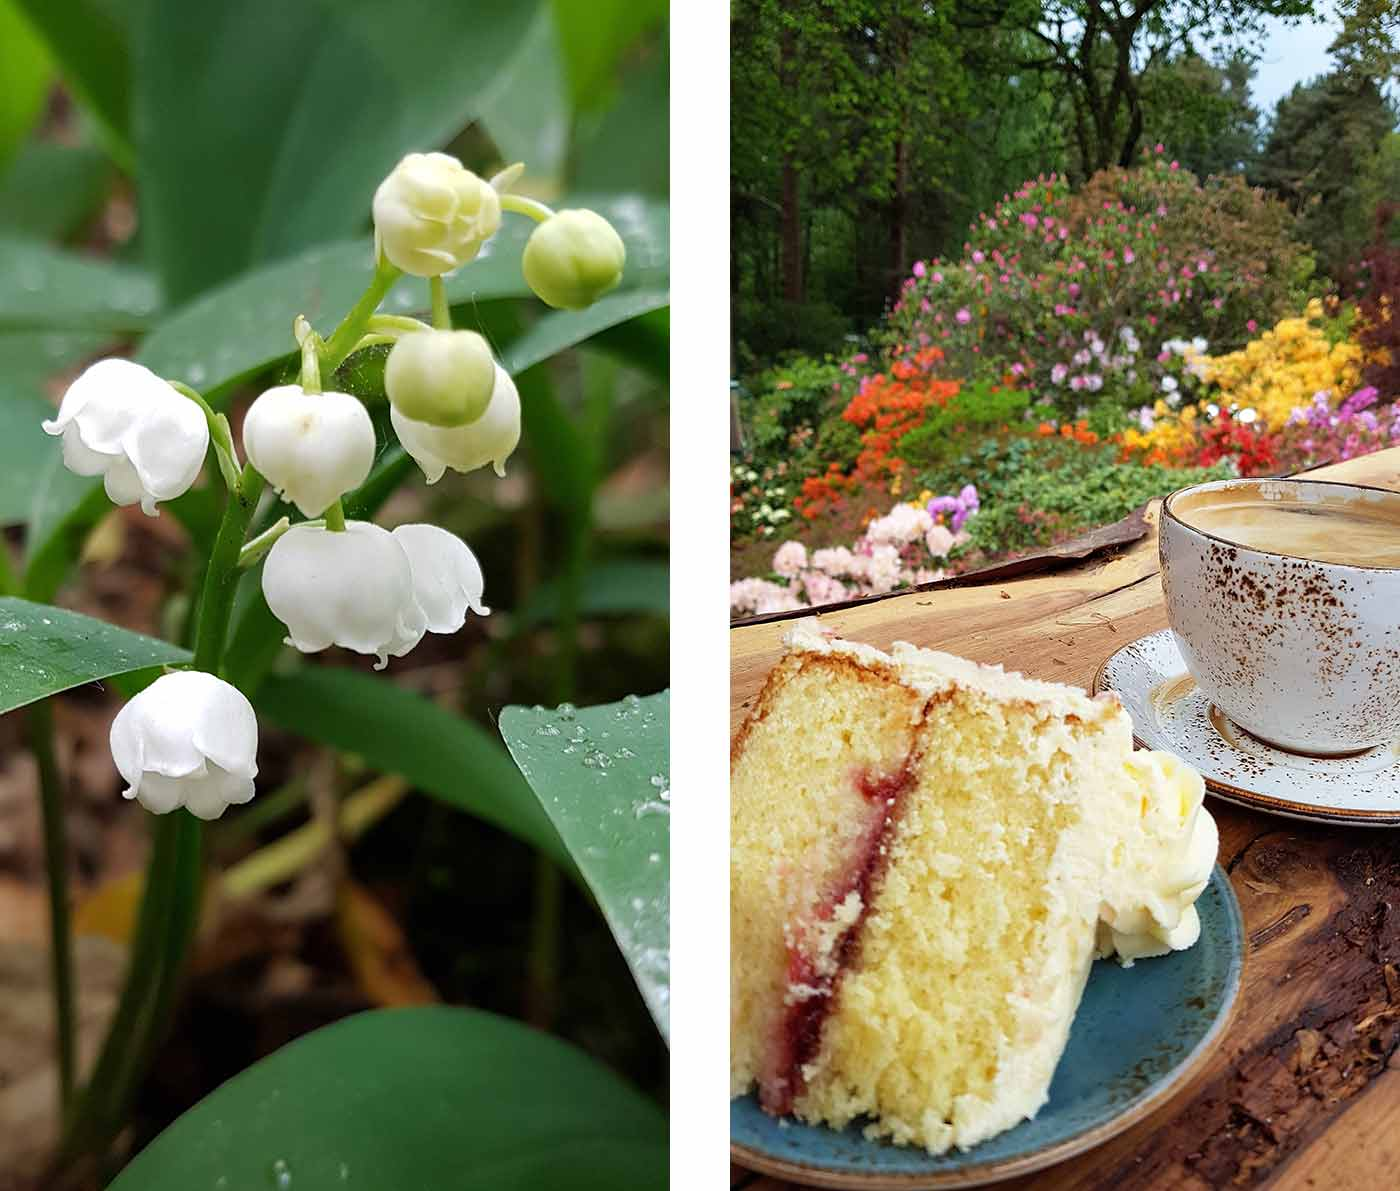 Snowdrops and cake at Lea Gardens